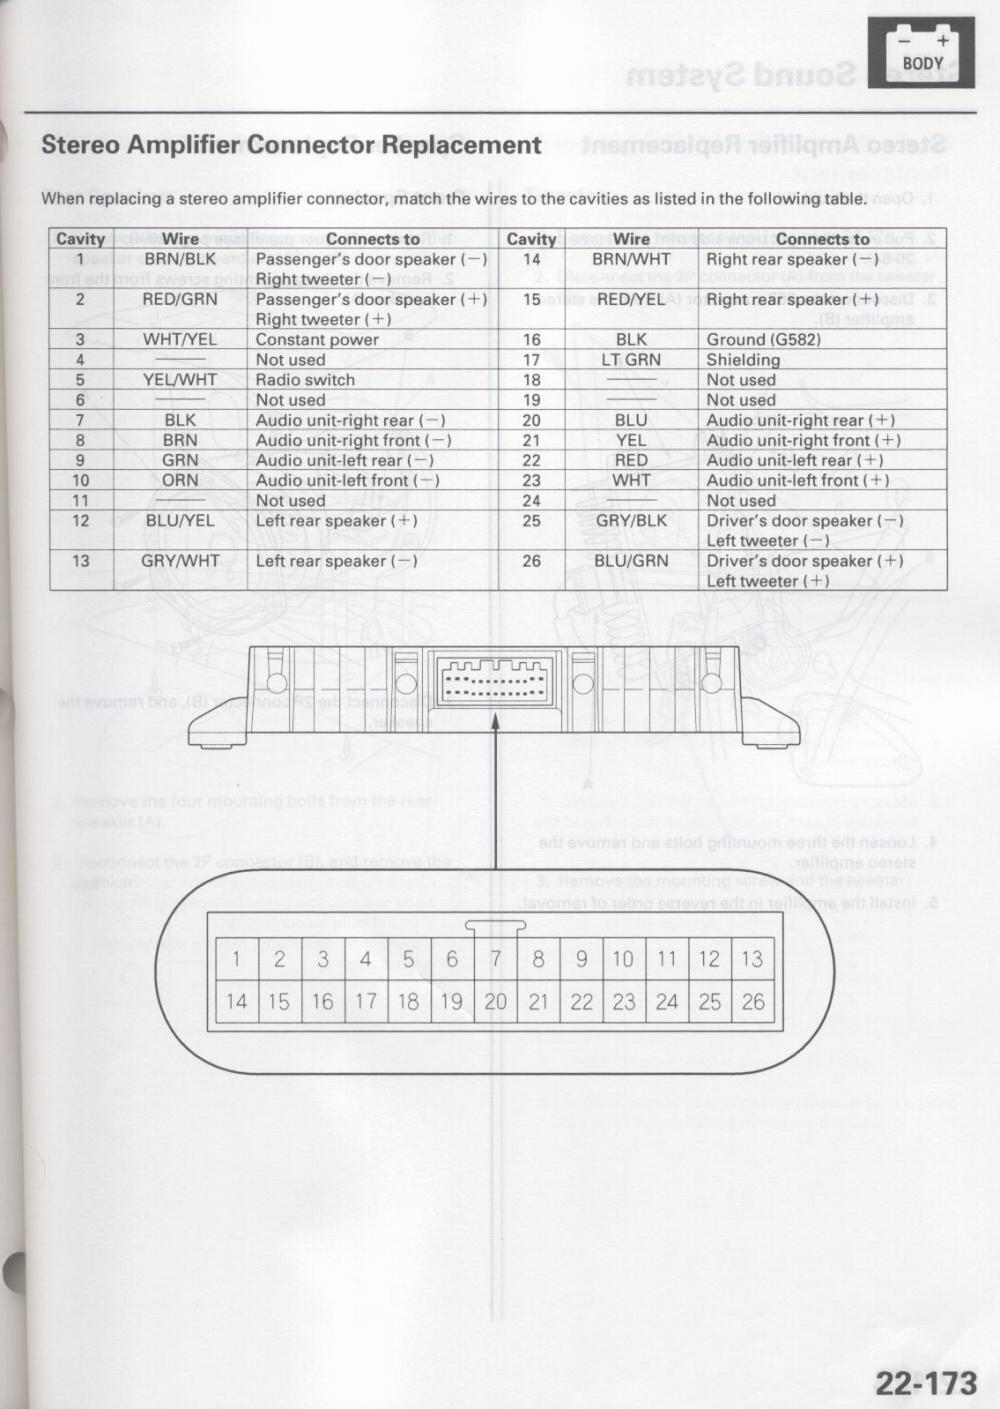 Car Radio Stereo Audio Wiring Diagram Autoradio Connector Wire Acura Tail Light Installation Schematic Schema Esquema De Conexiones Anschlusskammern Konektor